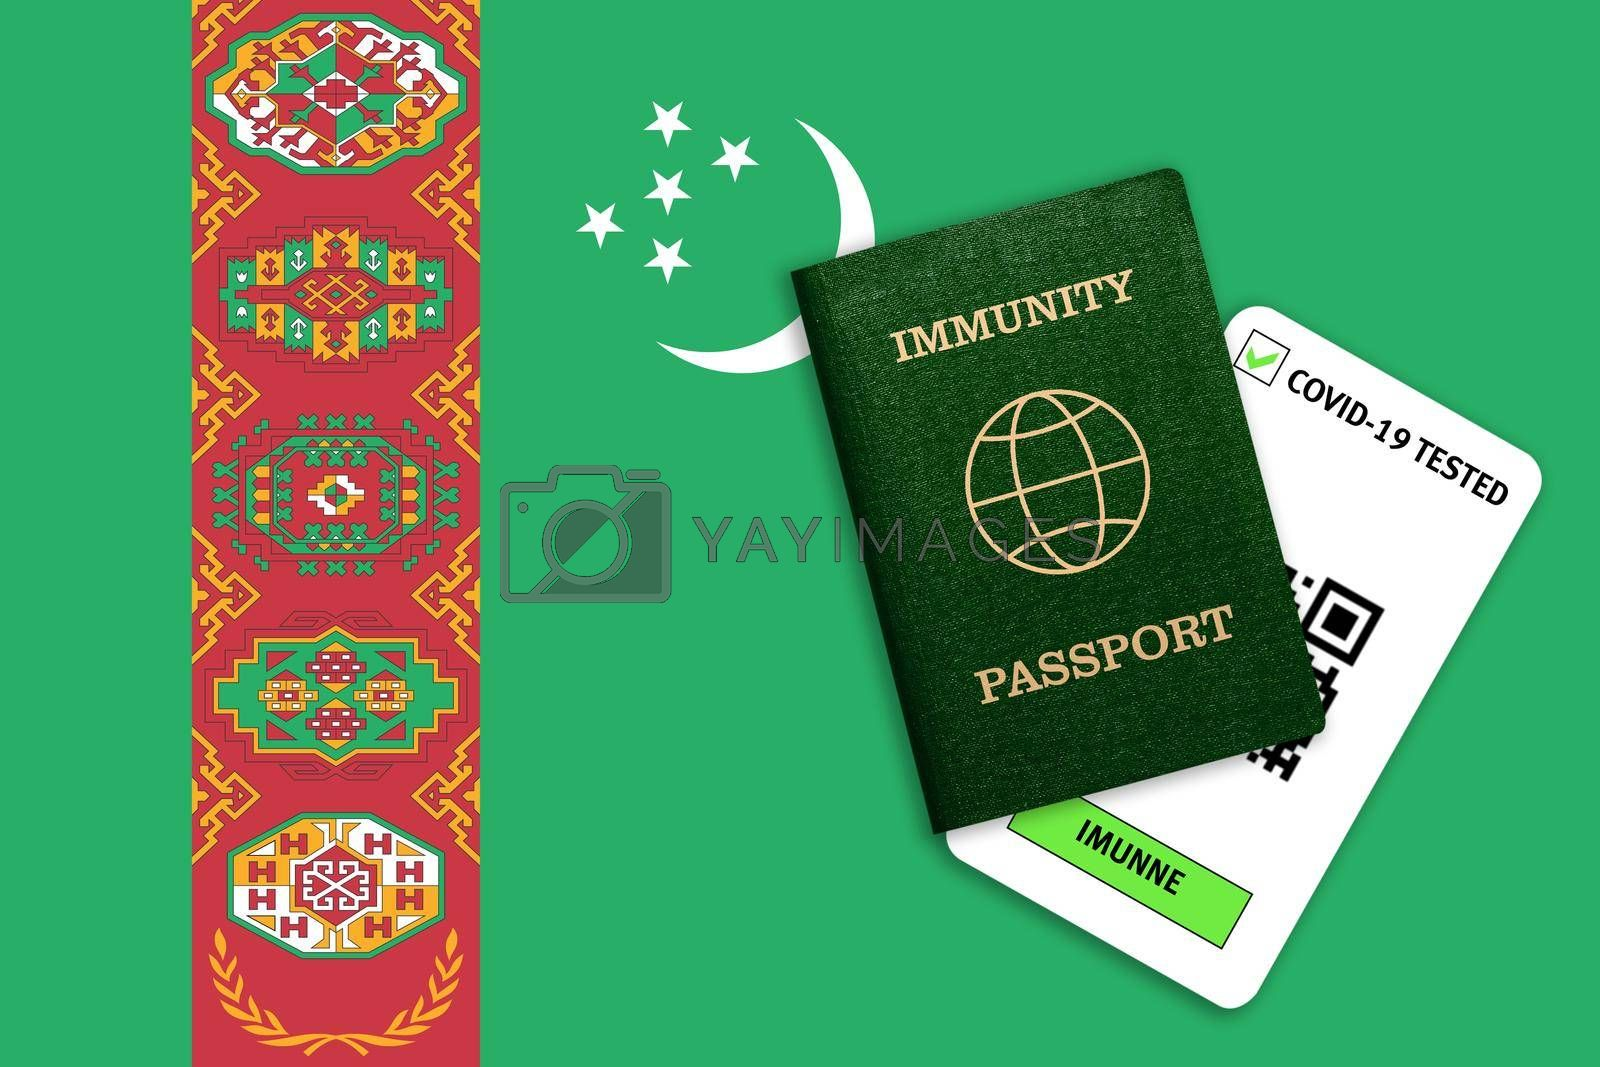 Concept of Immunity passport, certificate for traveling after pandemic for people who have had coronavirus or made vaccine and test result for COVID-19 on flag of Turkmenistan